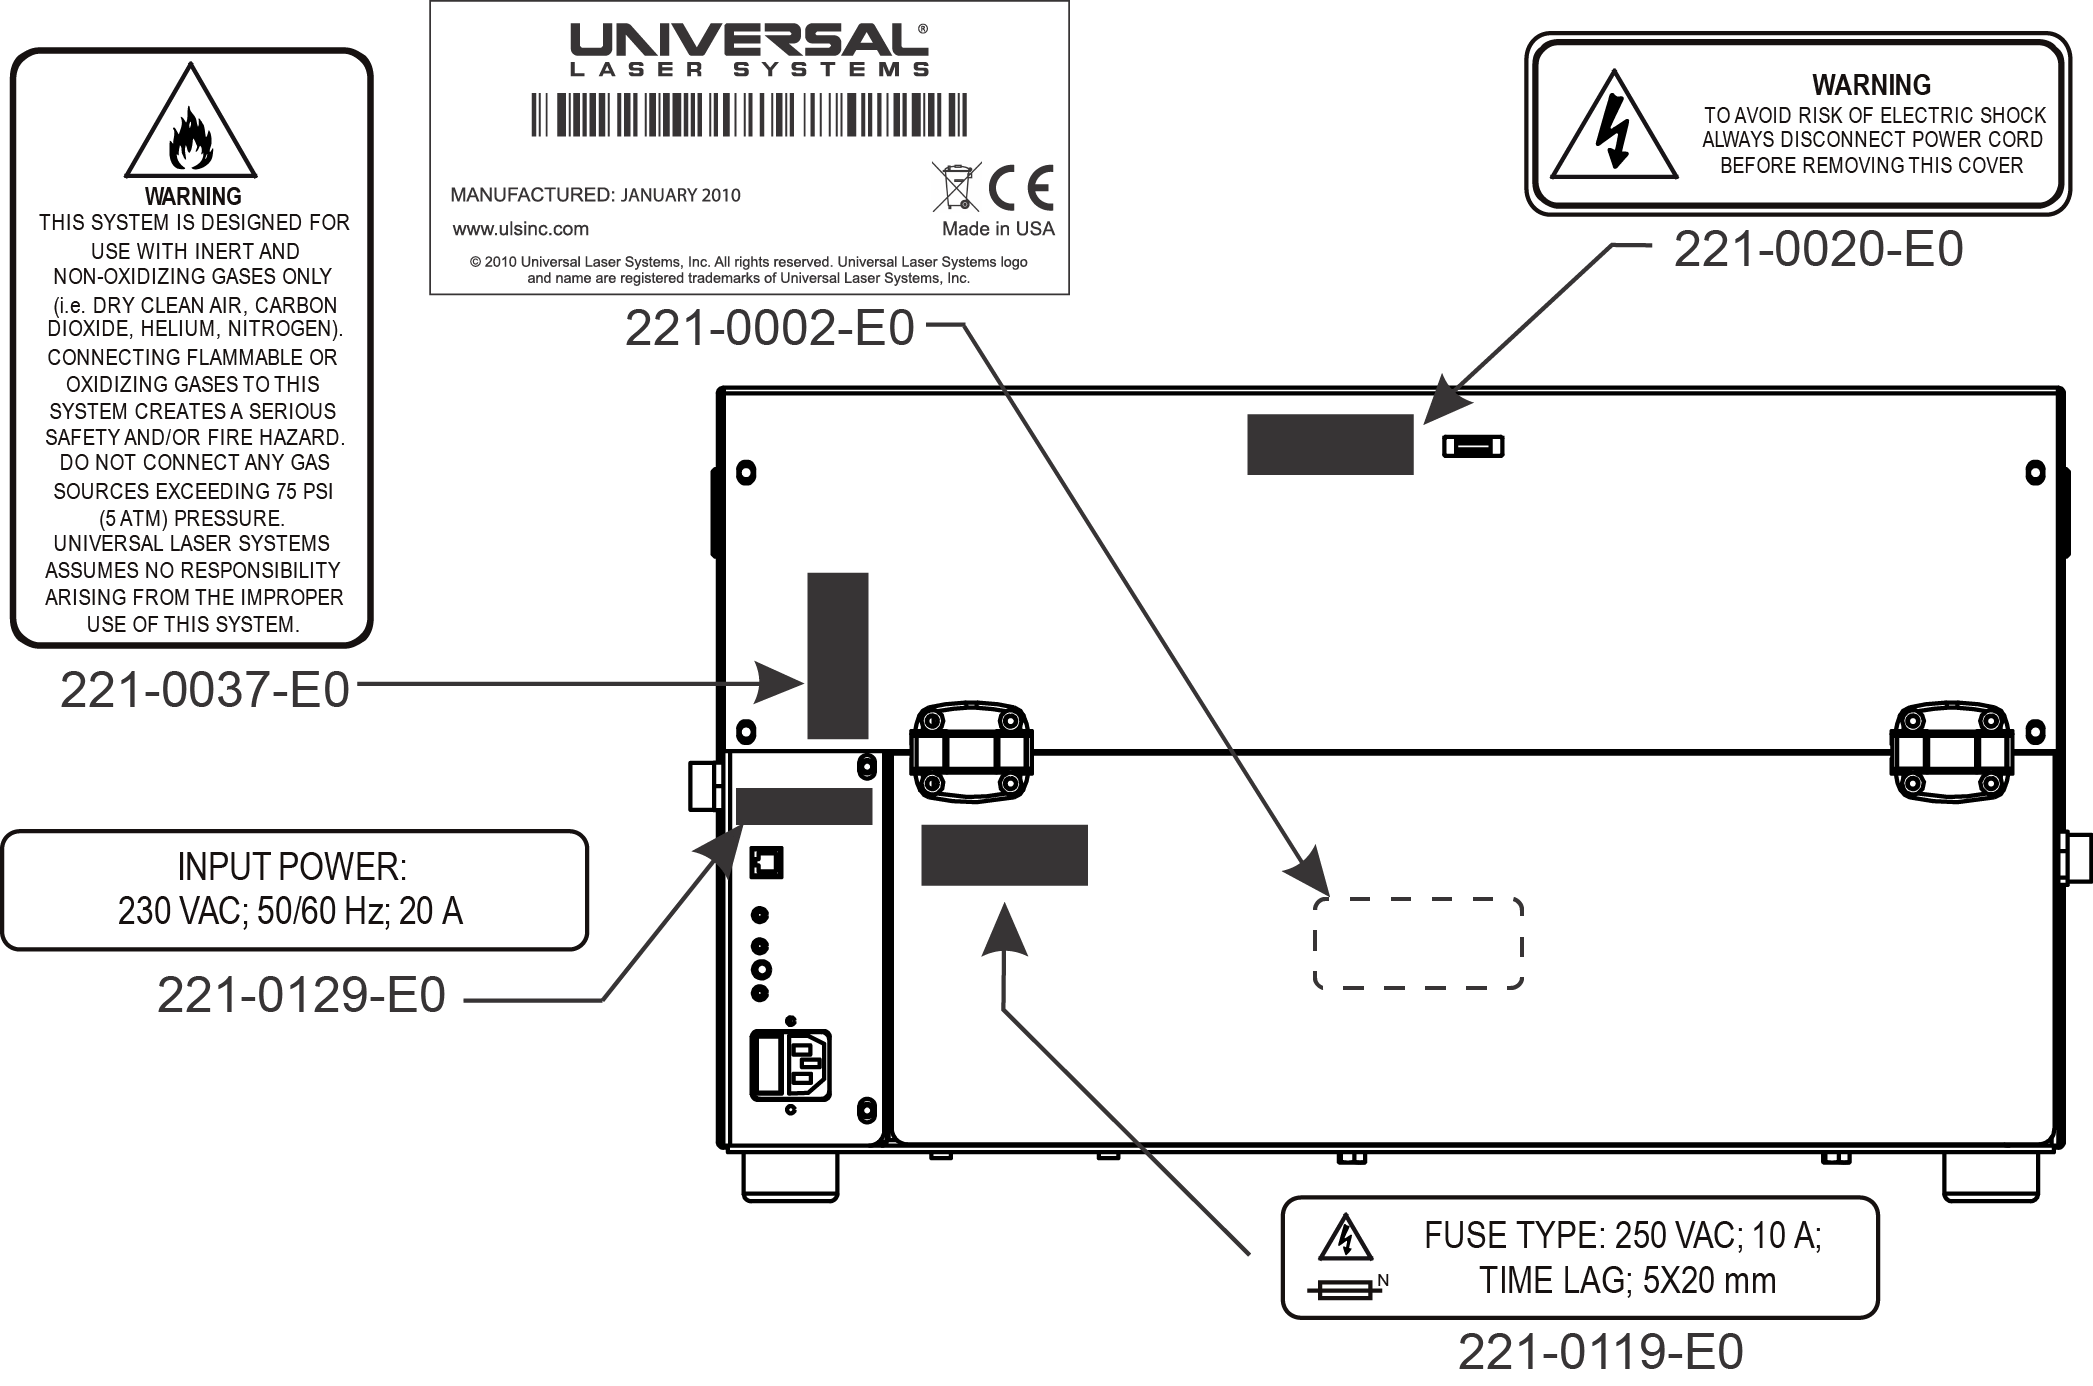 compressor_module_labels laser safety from universal laser systems Basic Electrical Wiring Diagrams at crackthecode.co